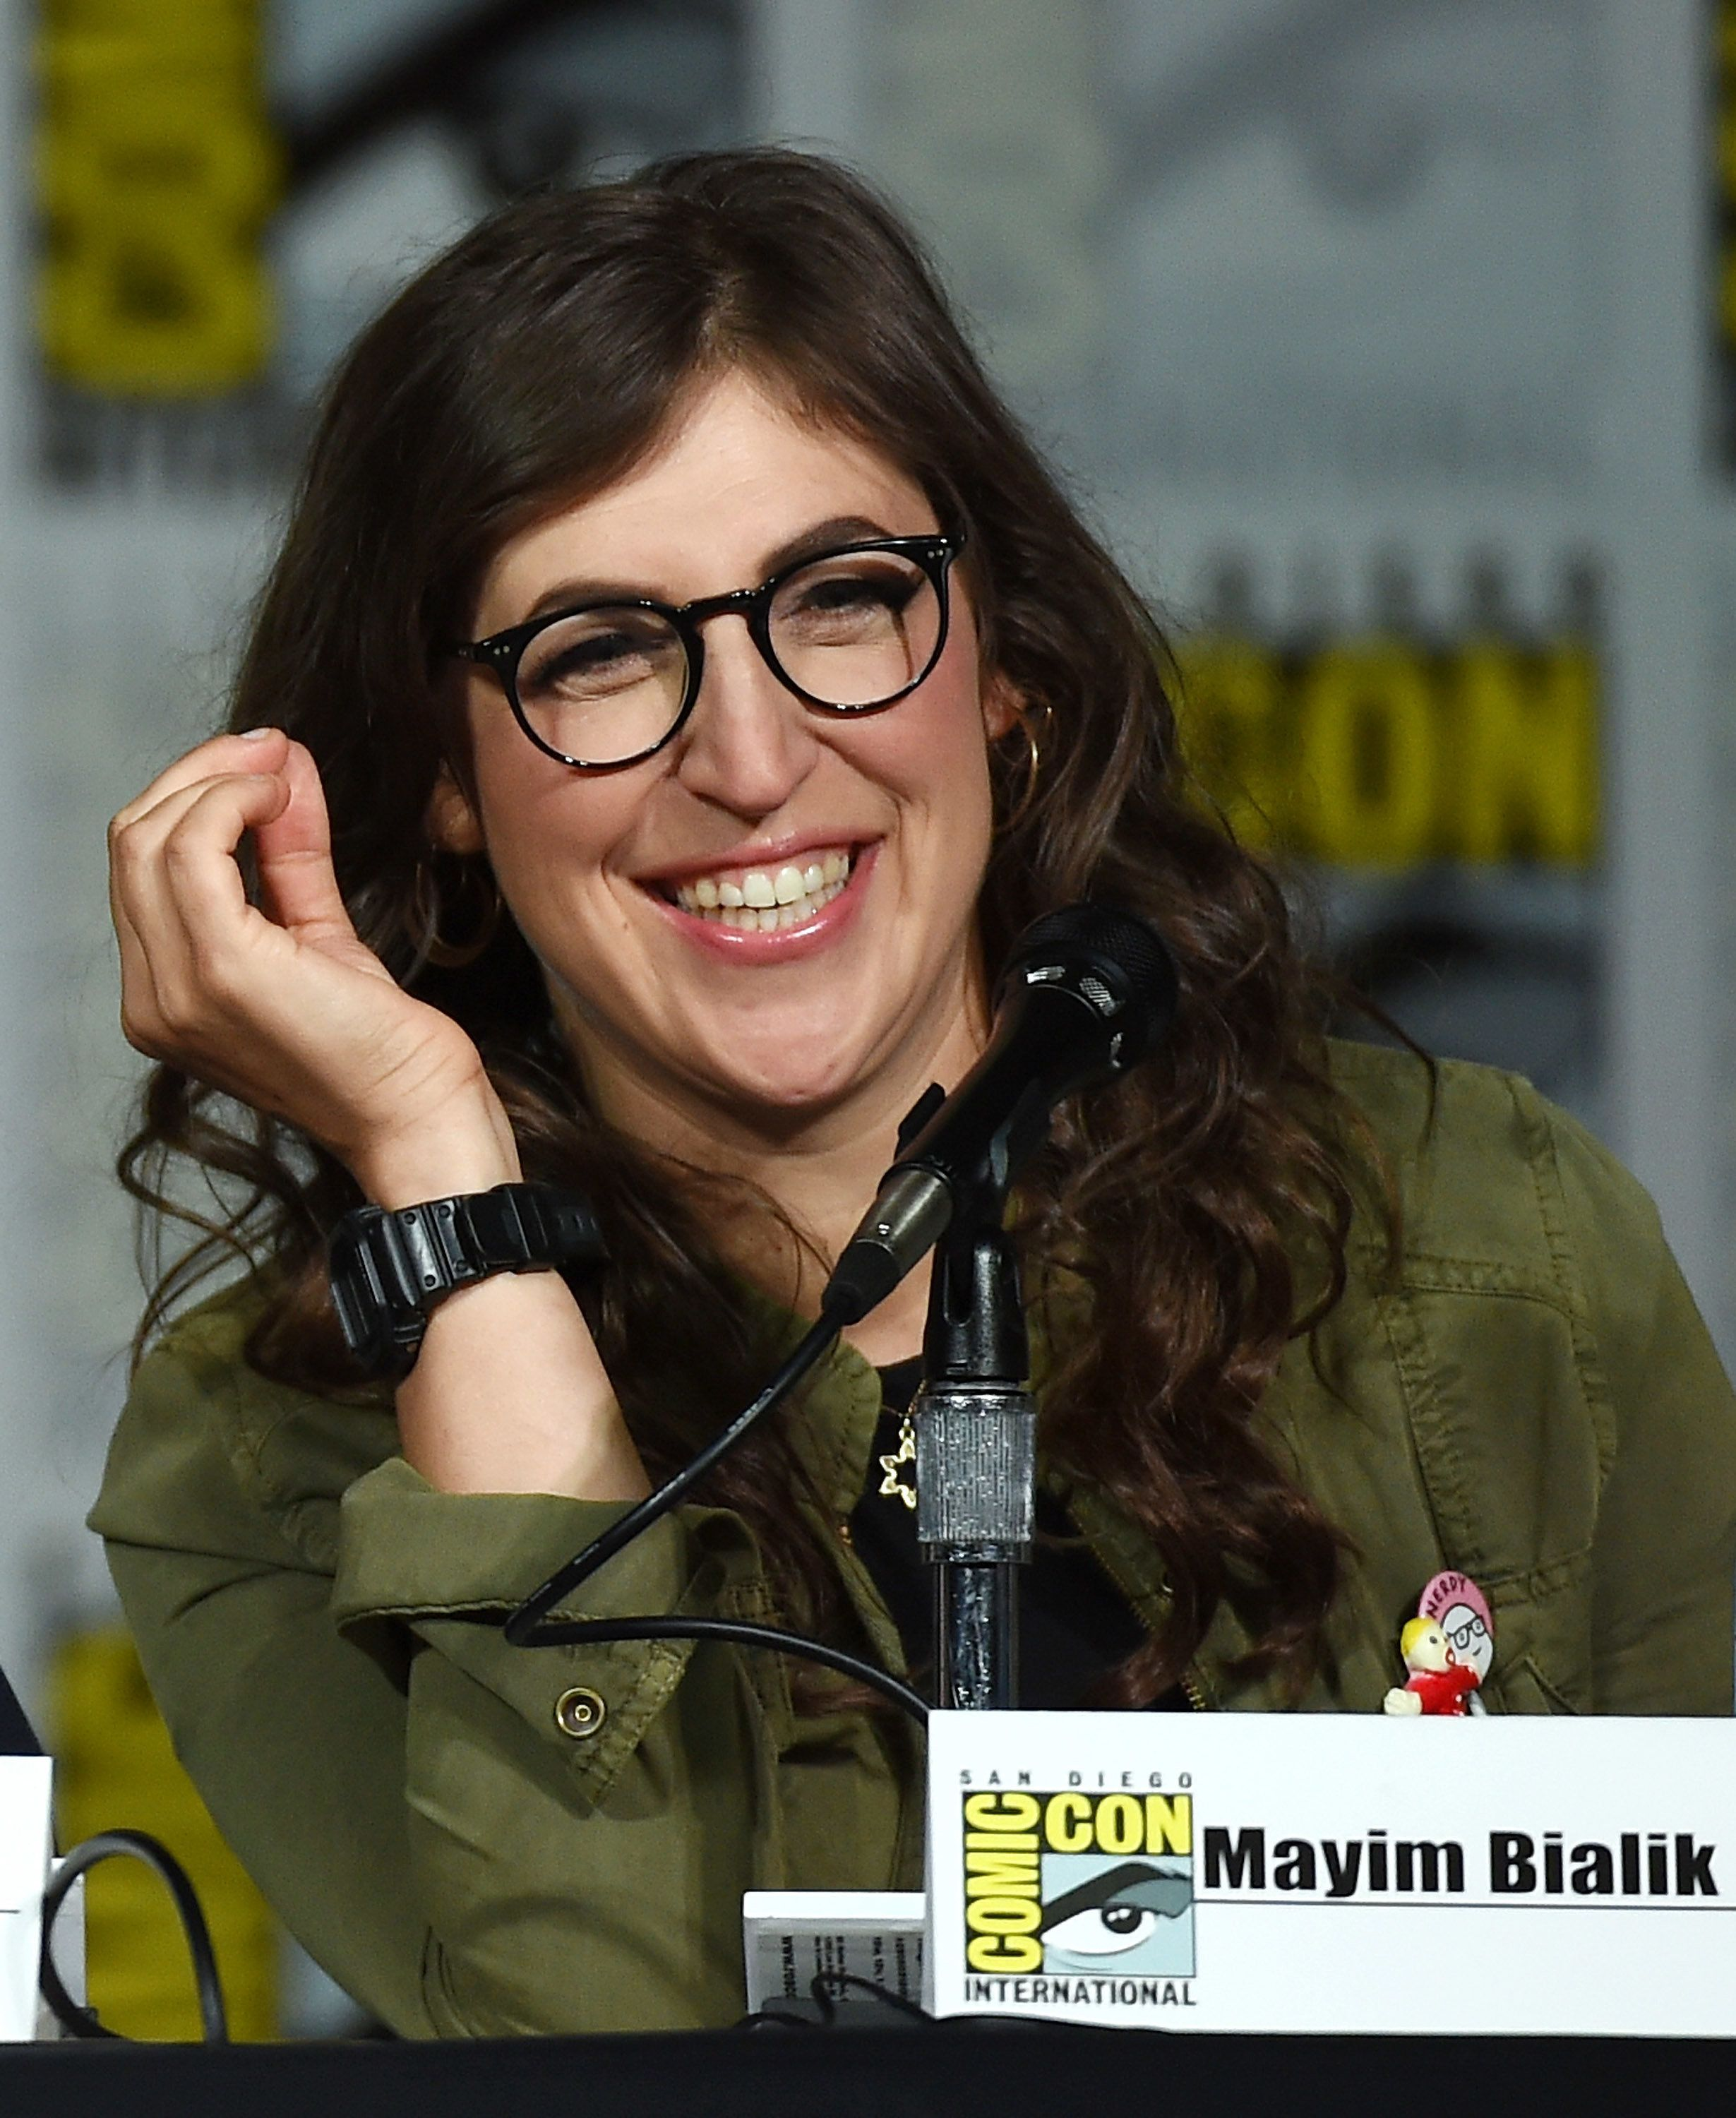 SAN DIEGO, CA - JULY 10:  Actress Mayim Bialik attends the Inside 'The Big Bang Theory' Writer's Room panel during Comic-Con International 2015 at the San Diego Convention Center on July 10, 2015 in San Diego, California.  (Photo by Ethan Miller/Getty Images)